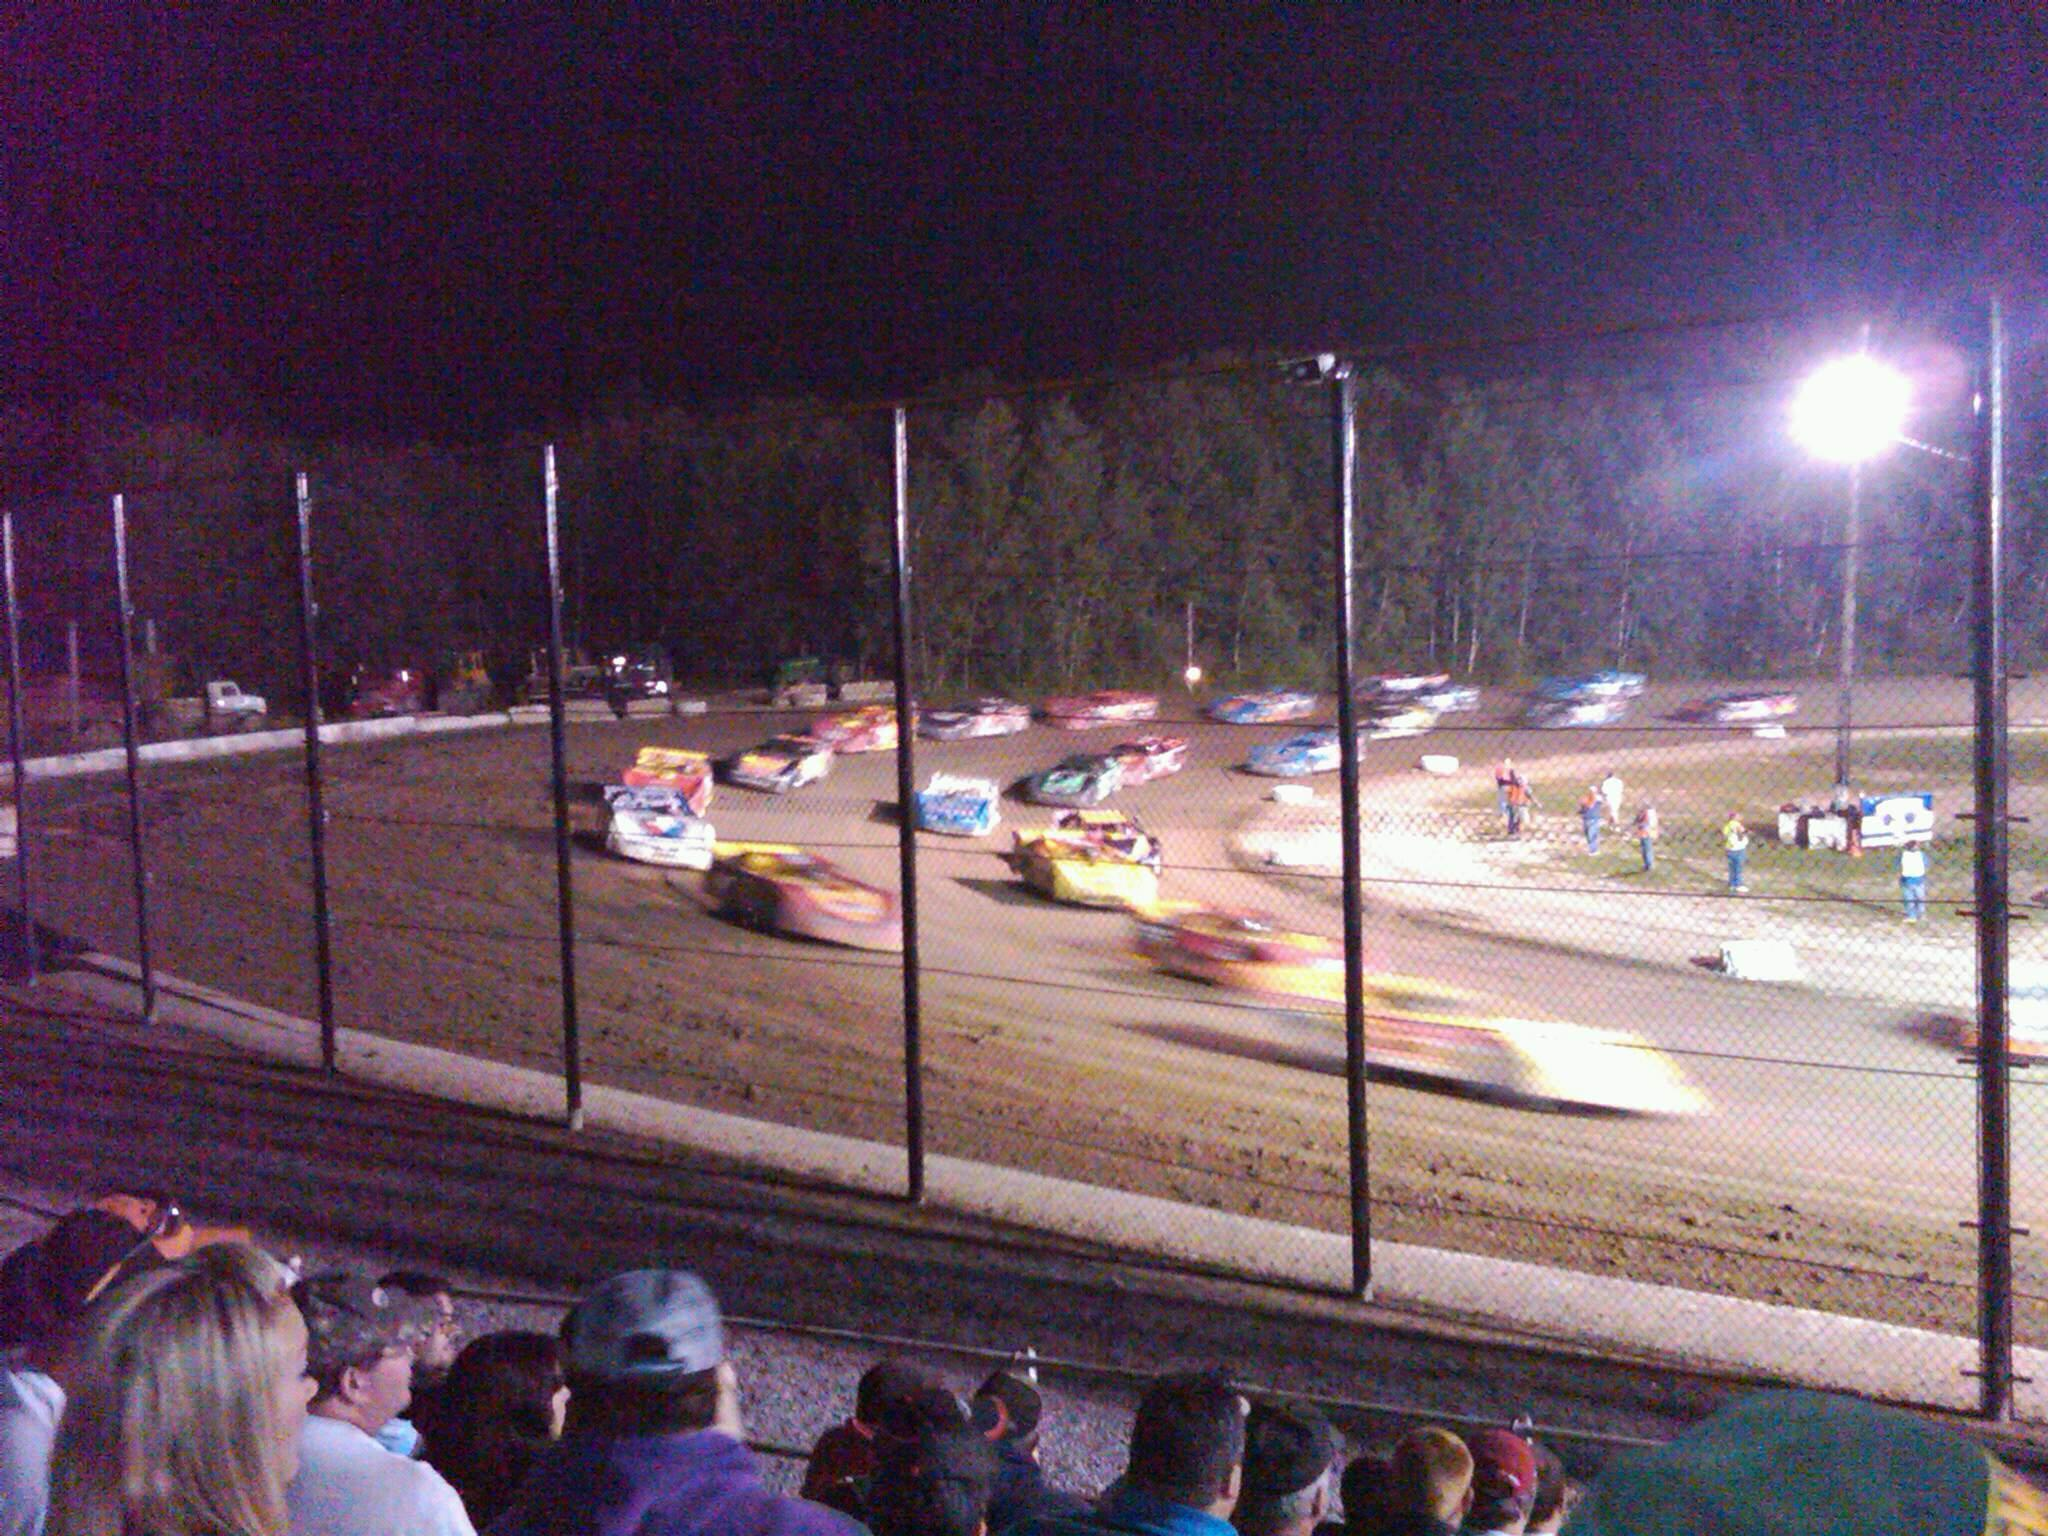 Brewerton Speedway Section A Row 6 Seat 1